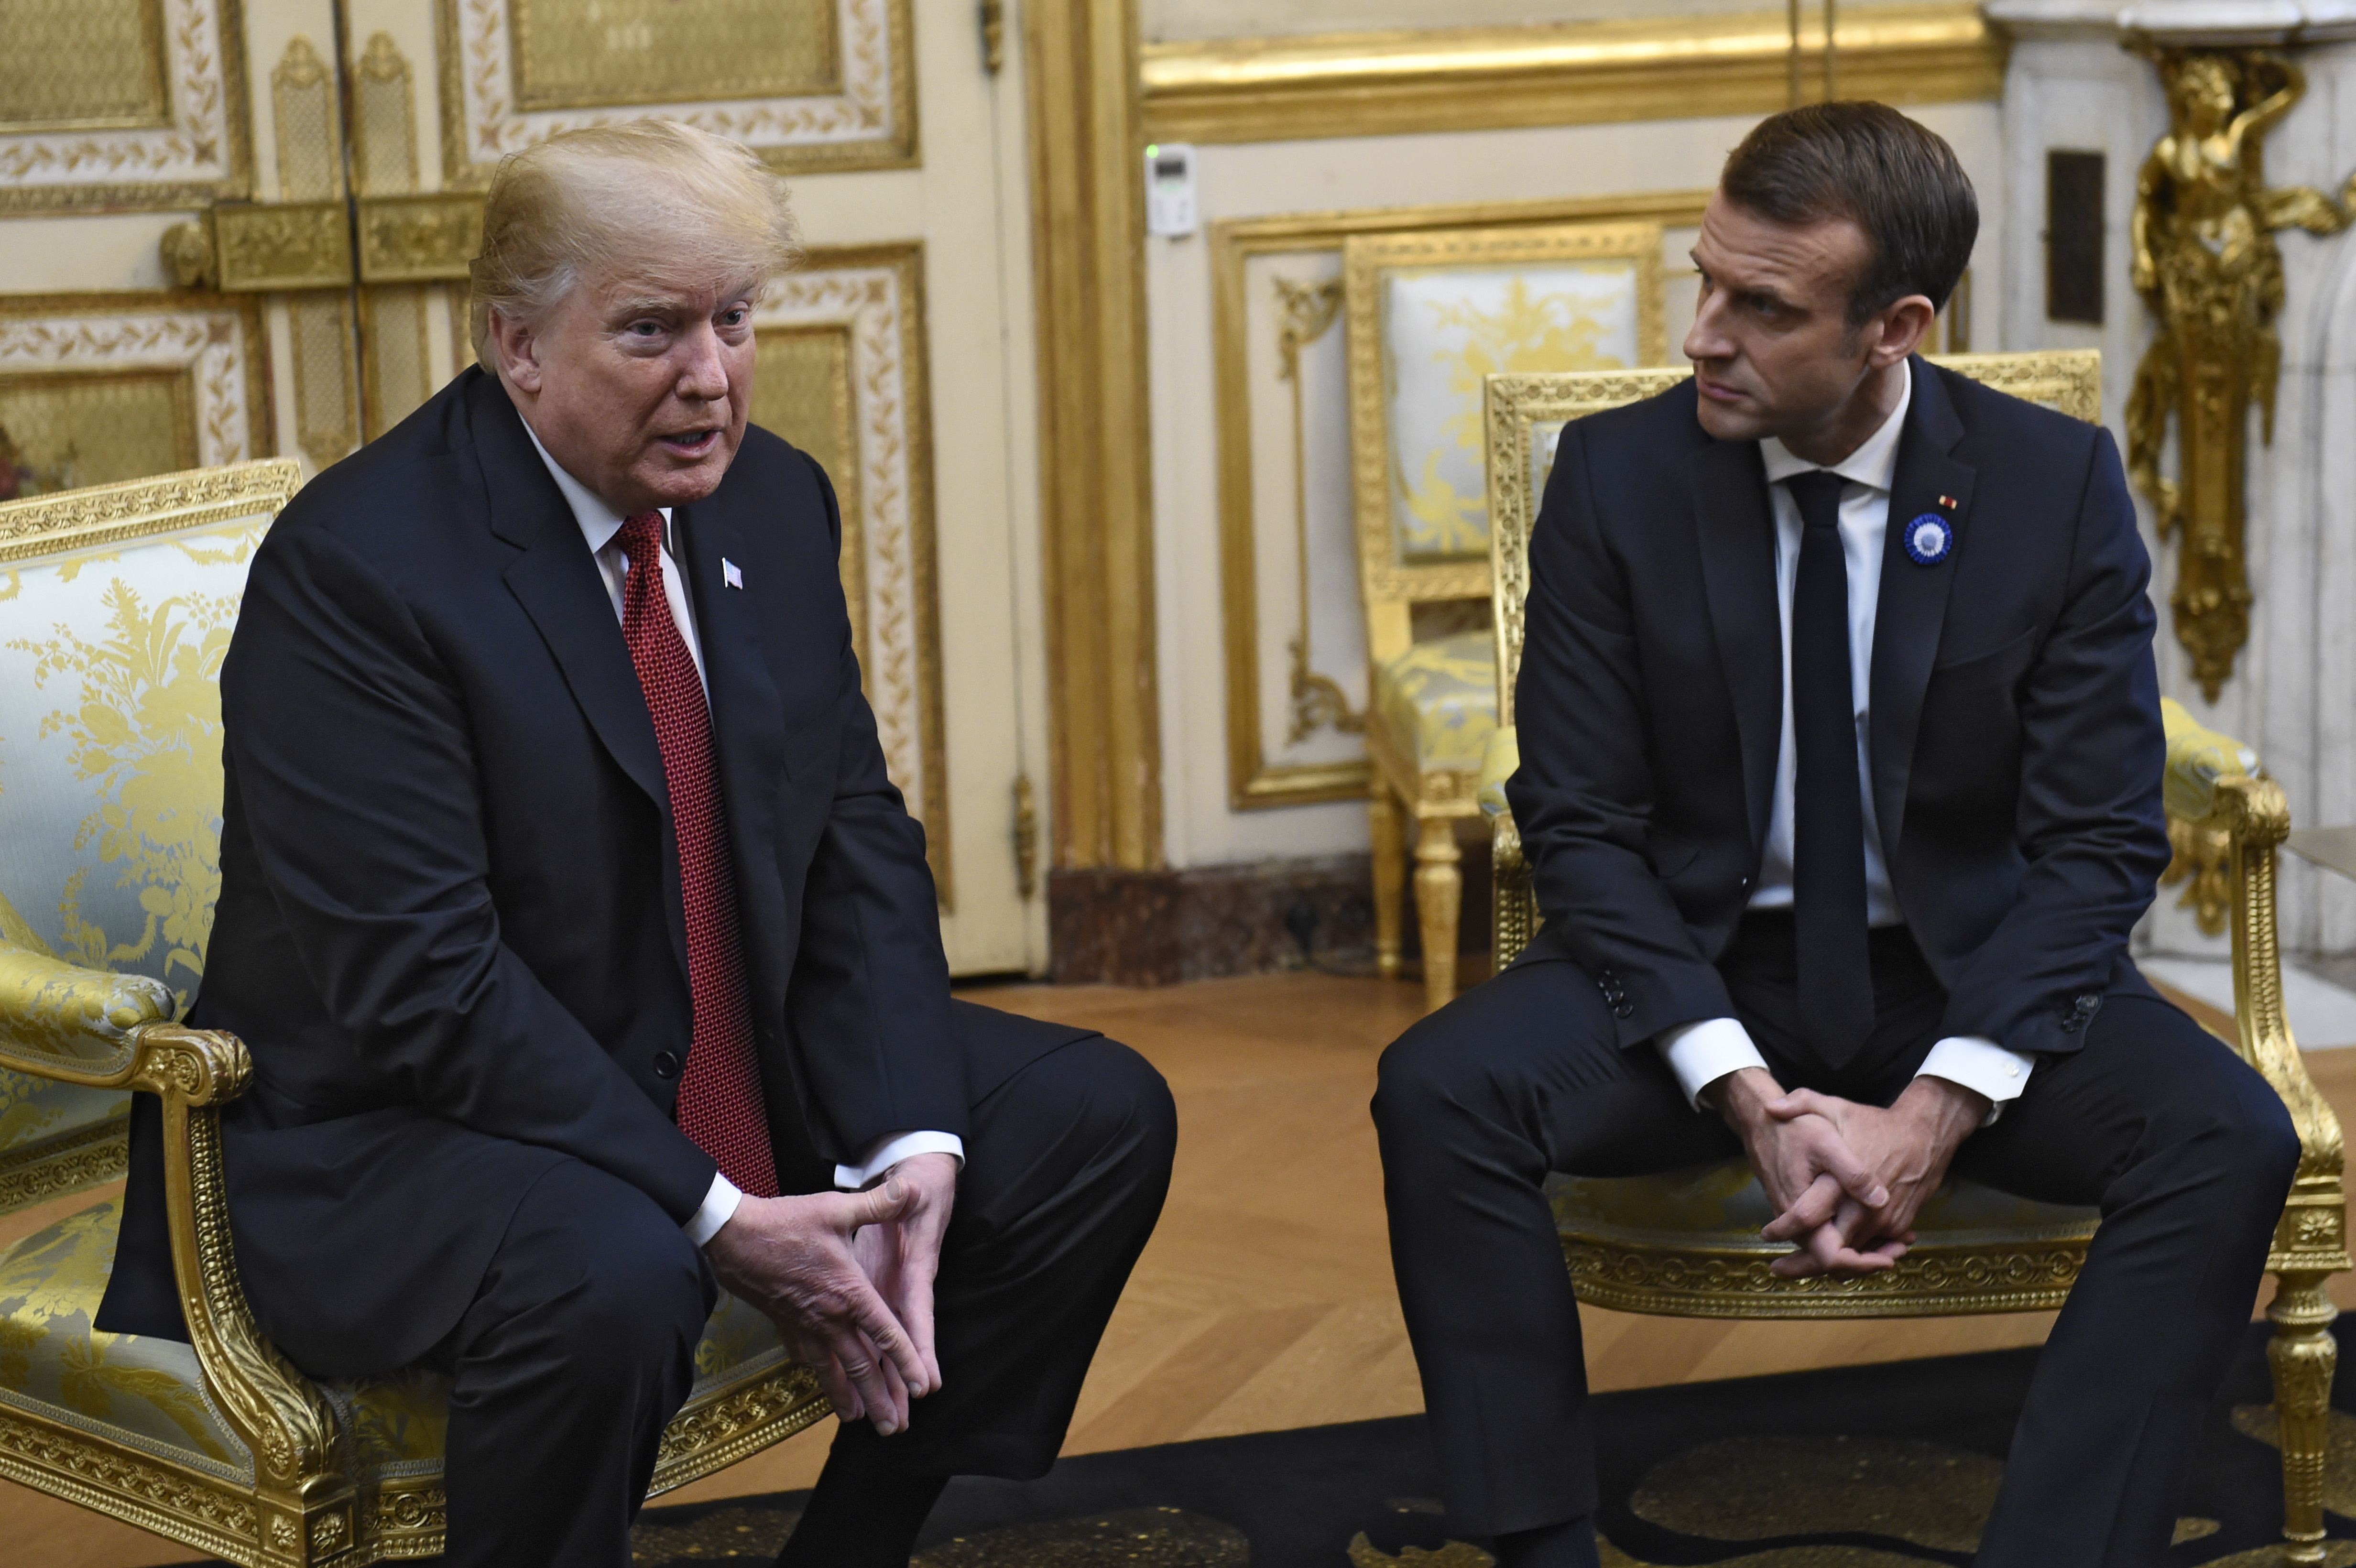 US President Donald Trump and French President Emmanuel Macron speak at the Elysee Palace ahead of bilateral talks.